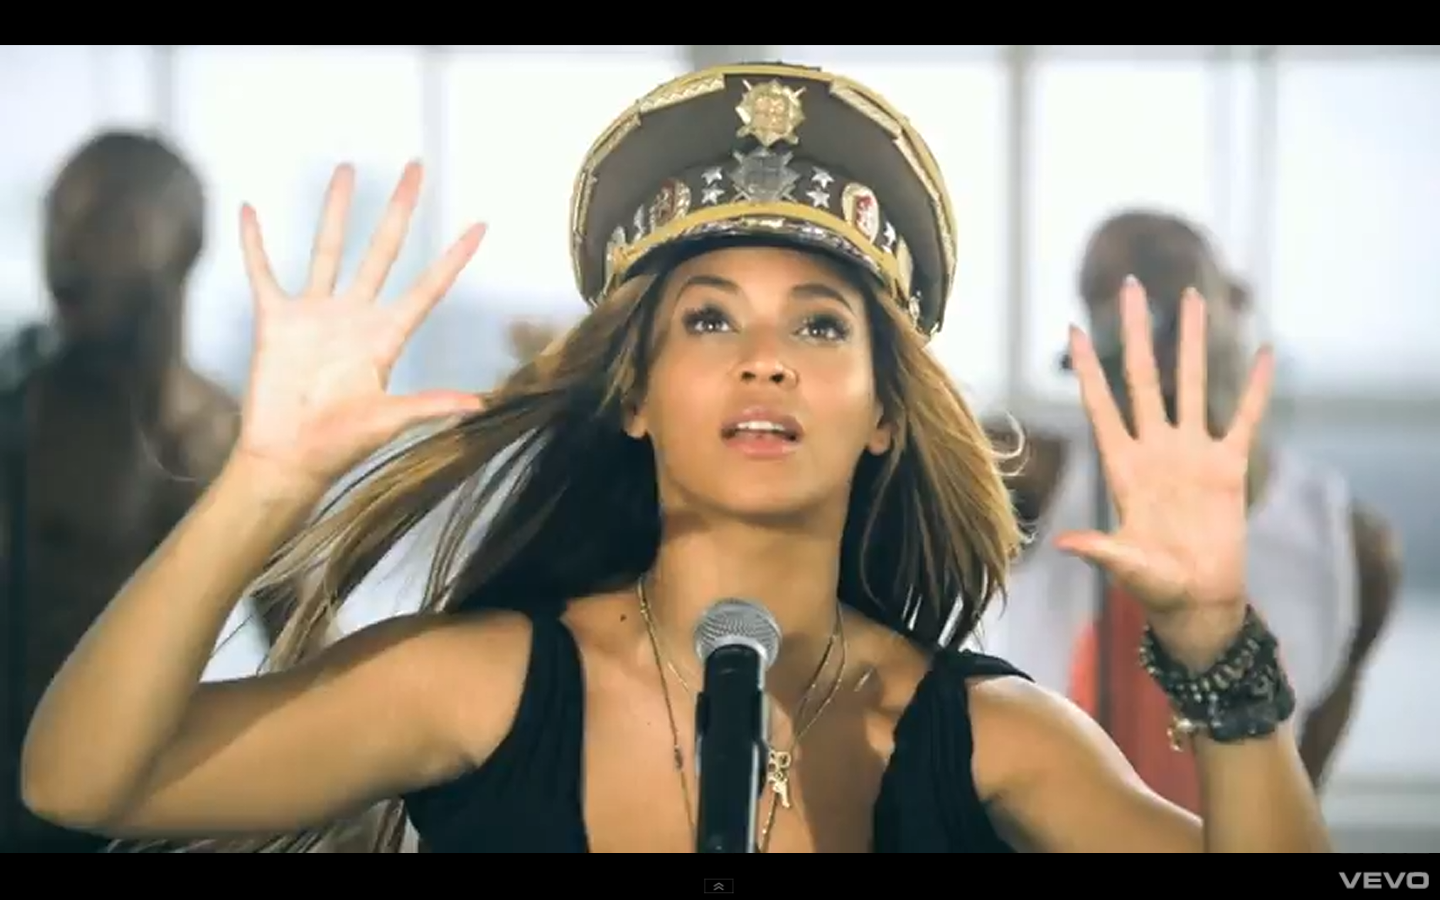 http://3.bp.blogspot.com/-h_Uaox_Qo_M/Tu38T3b1q7I/AAAAAAAAAYk/4vFIo0A8Rfg/s1600/Beyonce-LoveOnTop.png